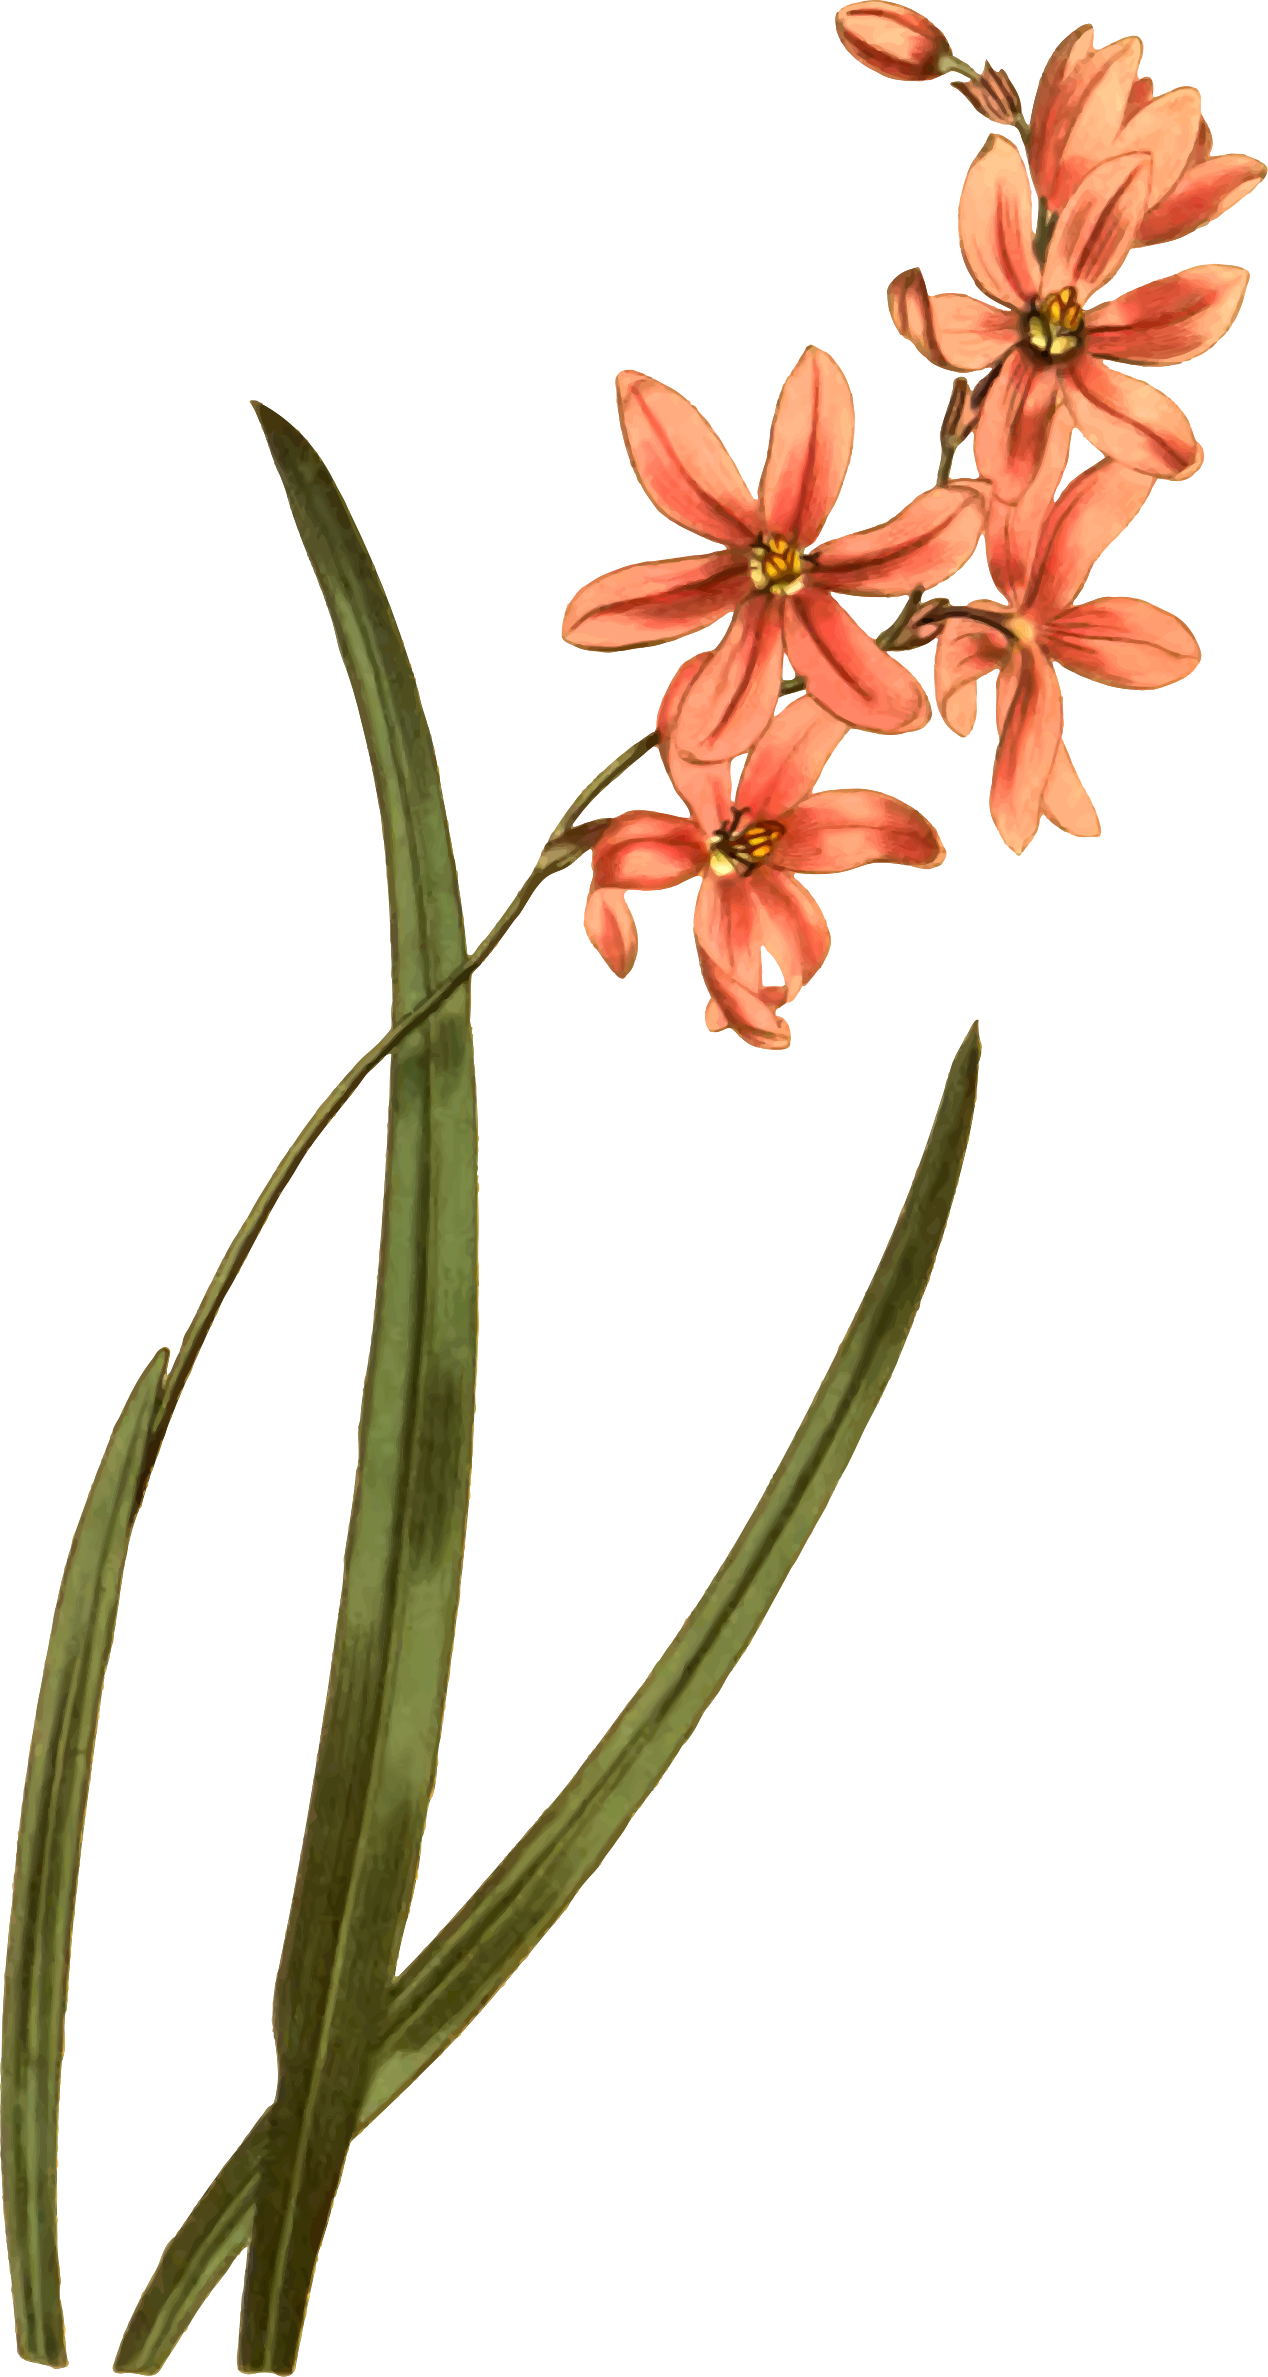 Lily of the valley-scented ixia by Firkin